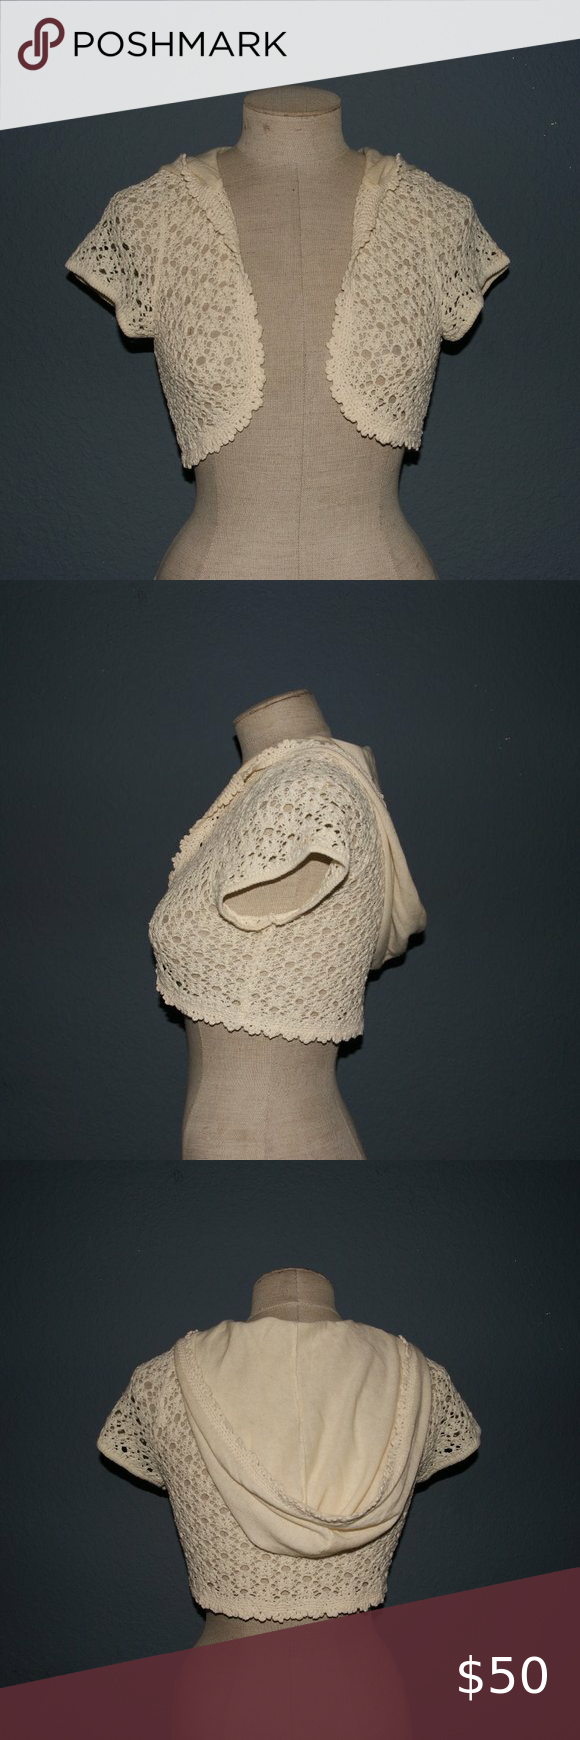 Anthro MOTH Cream Crochet Bolero Shrug Sweater S in 2020